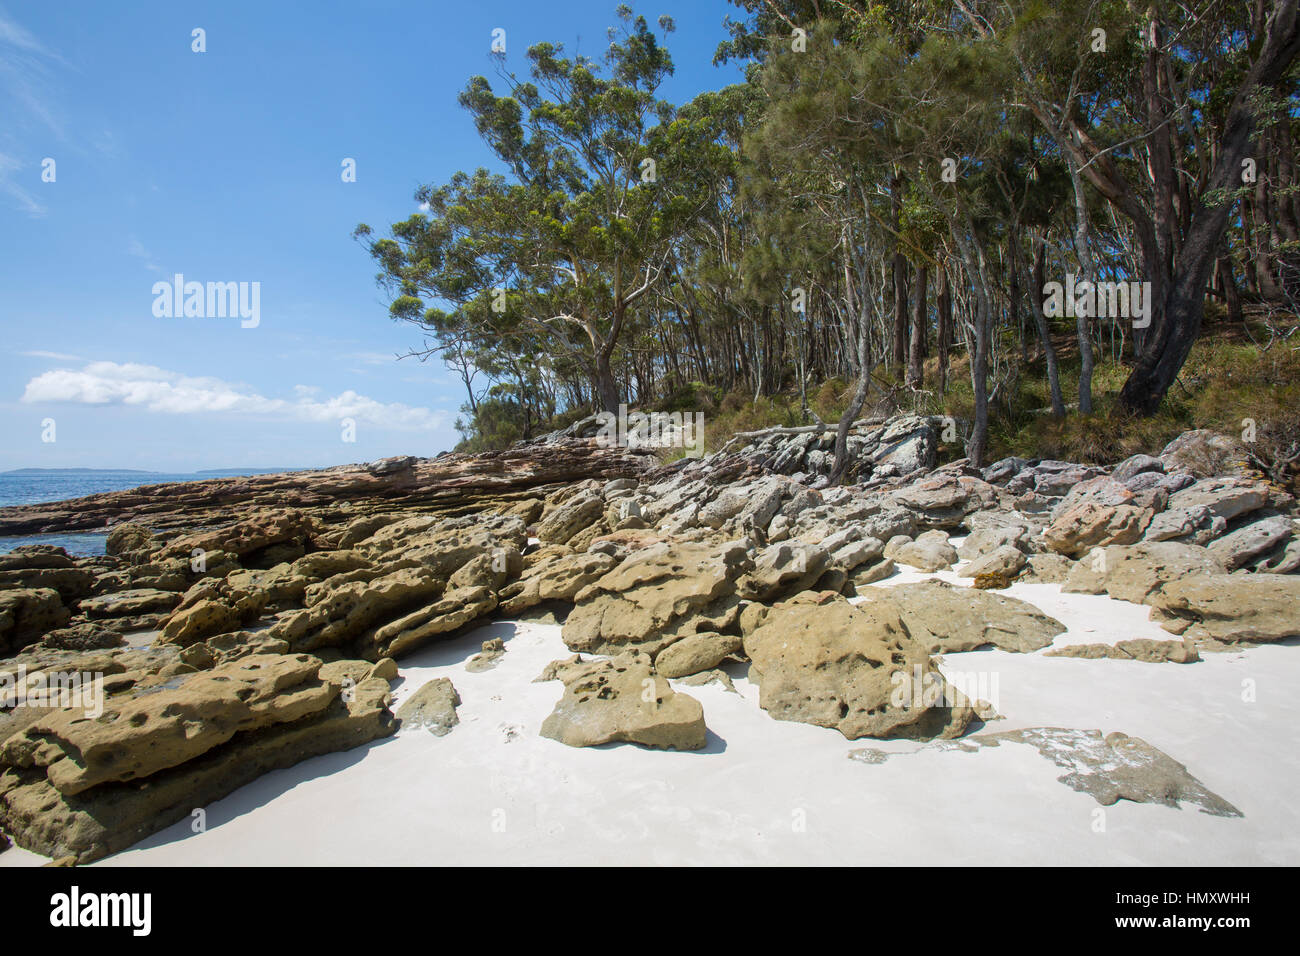 Southern rocky end of Greenfield Beach,Jervis Bay, on the south coast of New South Wales,Australia - Stock Image